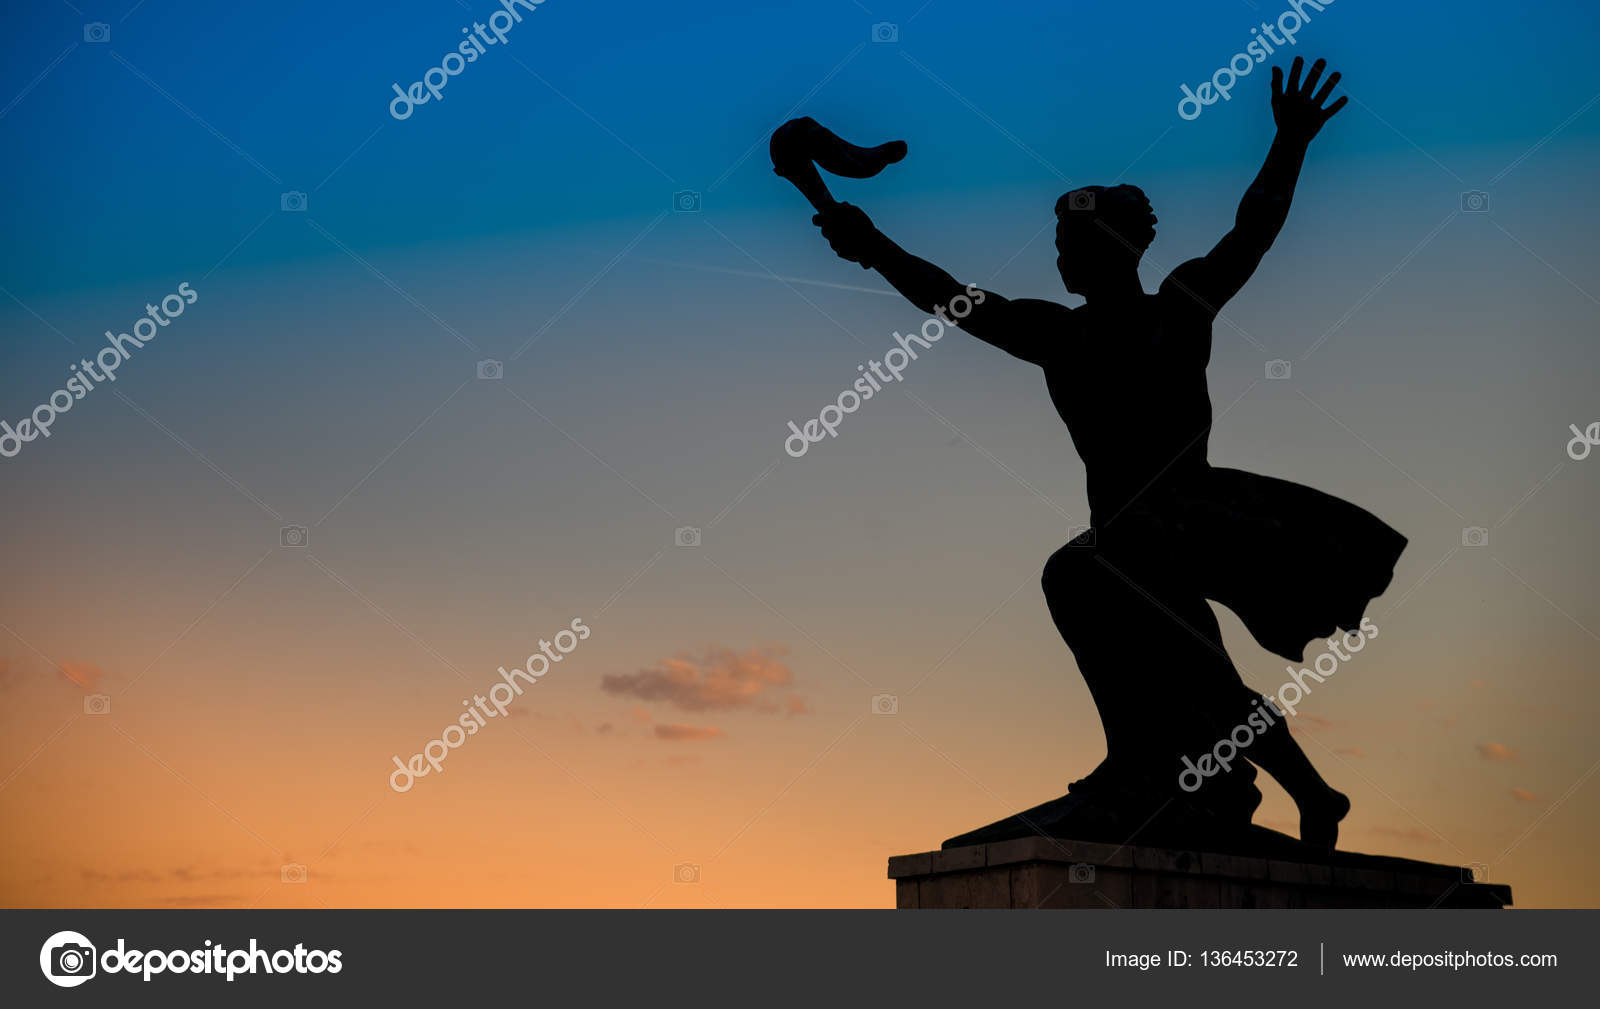 statue of liberty in budapest hungary stock photo anderm 136453272